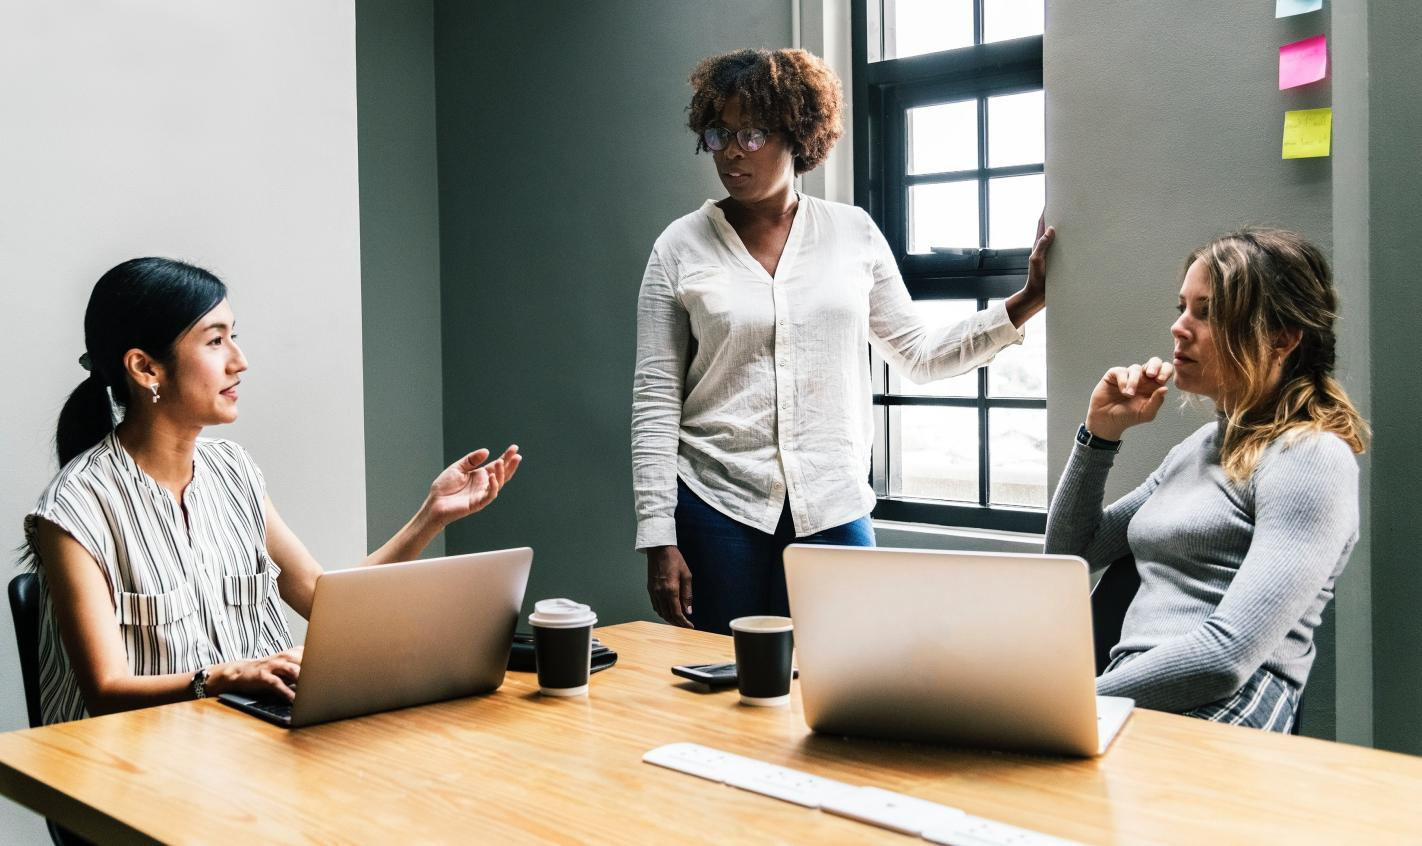 Women leaders discuss in office space